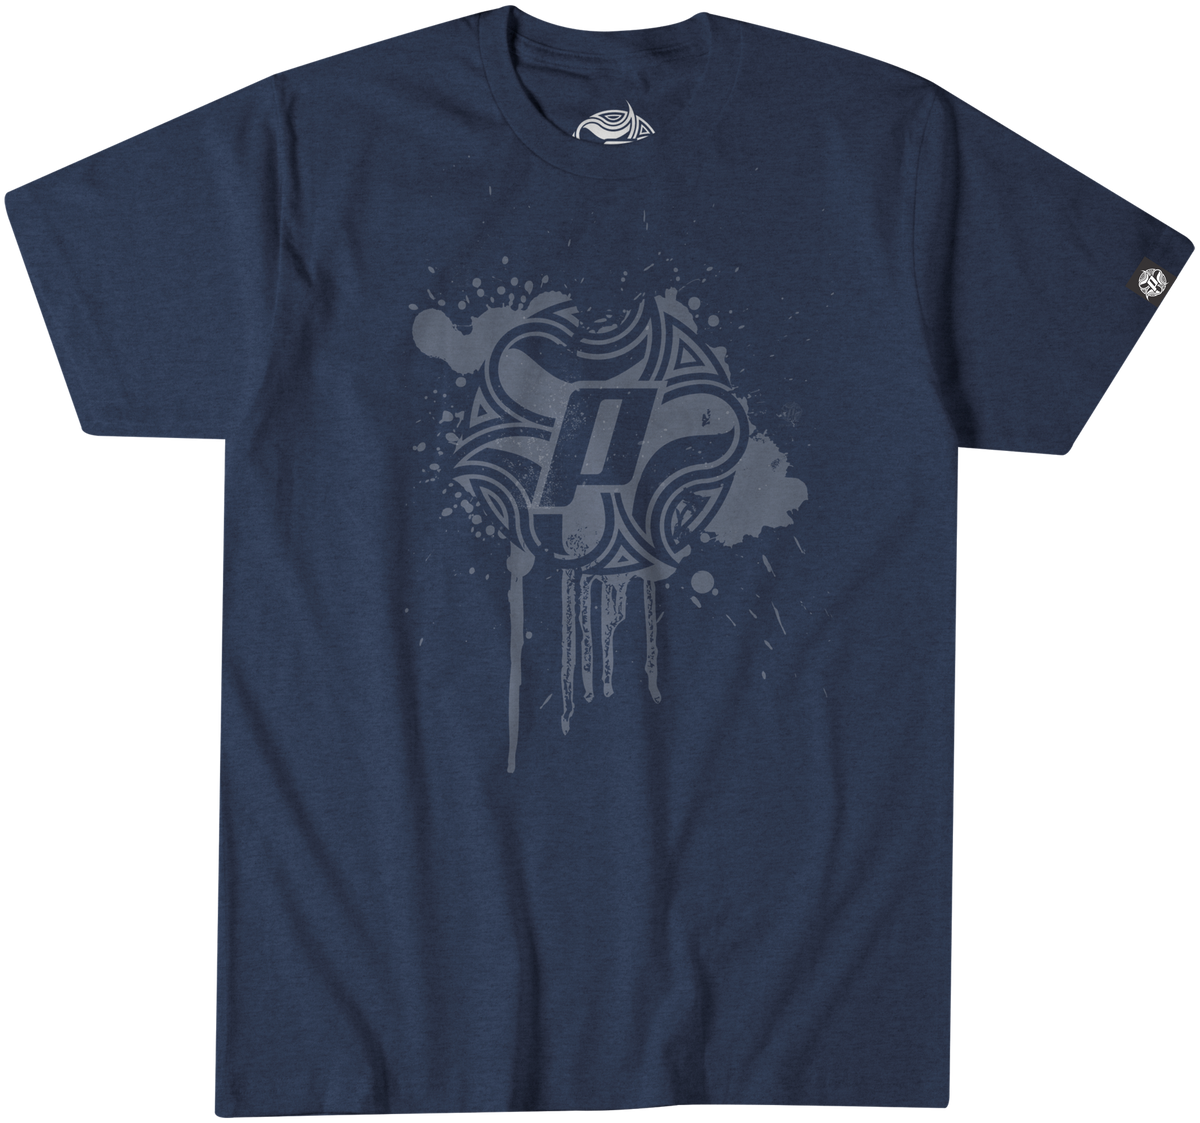 Panama Surf tee with Drip design in white over a indigo 50% polyester/25% combed ringspun cotton/25% rayon jersey 4.3 oz.